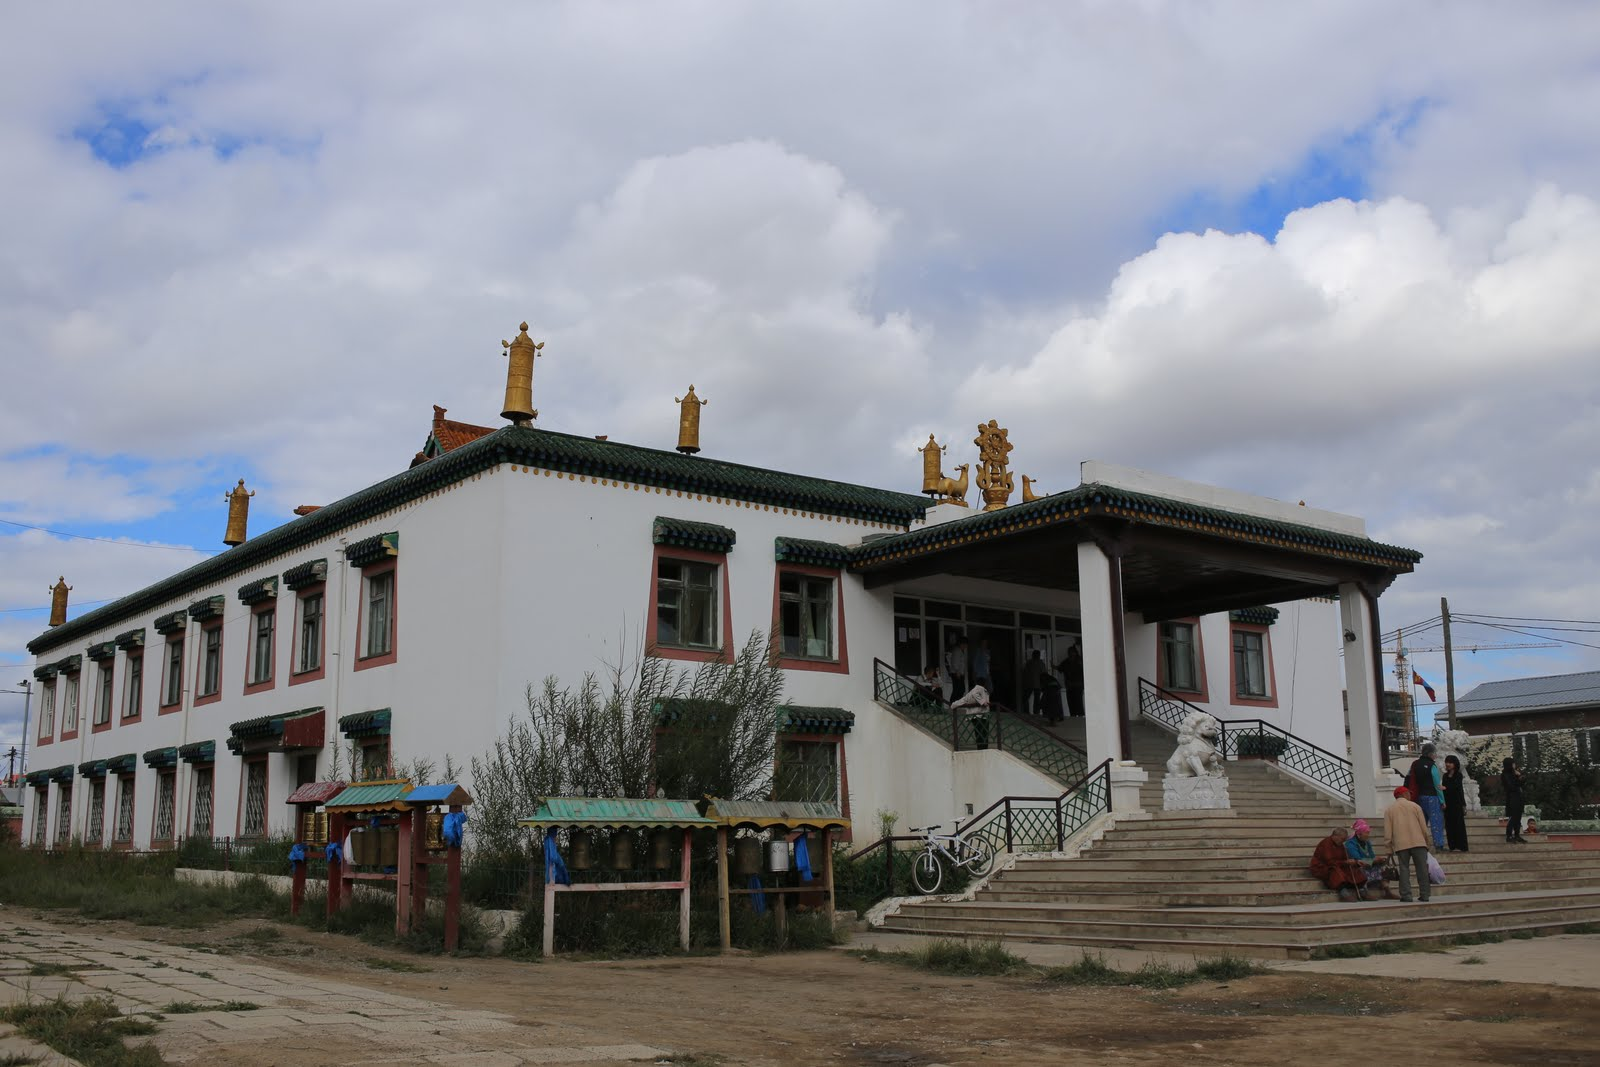 August, 2013: This is Idgaa Monastery where the 100 Million Mani Retreat happened. Rinpoche/FPMT built and sponsored the monastery. Idgaa is officially a part of Sera Je monastery. It holds up to 1000 monks.Photo: Ven.Thubten Kunsang.